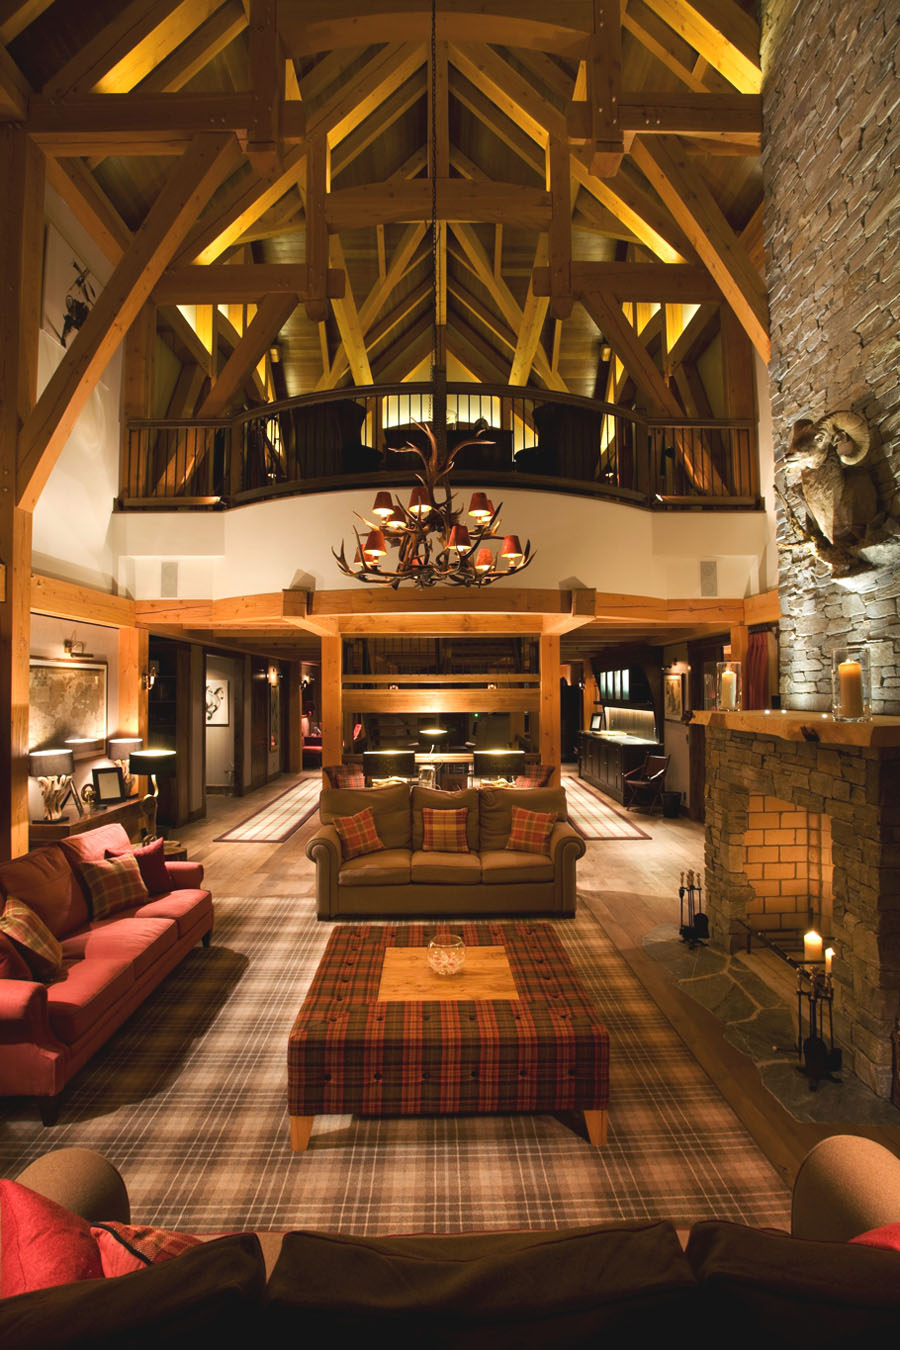 Bighorn lodge revelstoke mountain resort idesignarch for Home decor canada